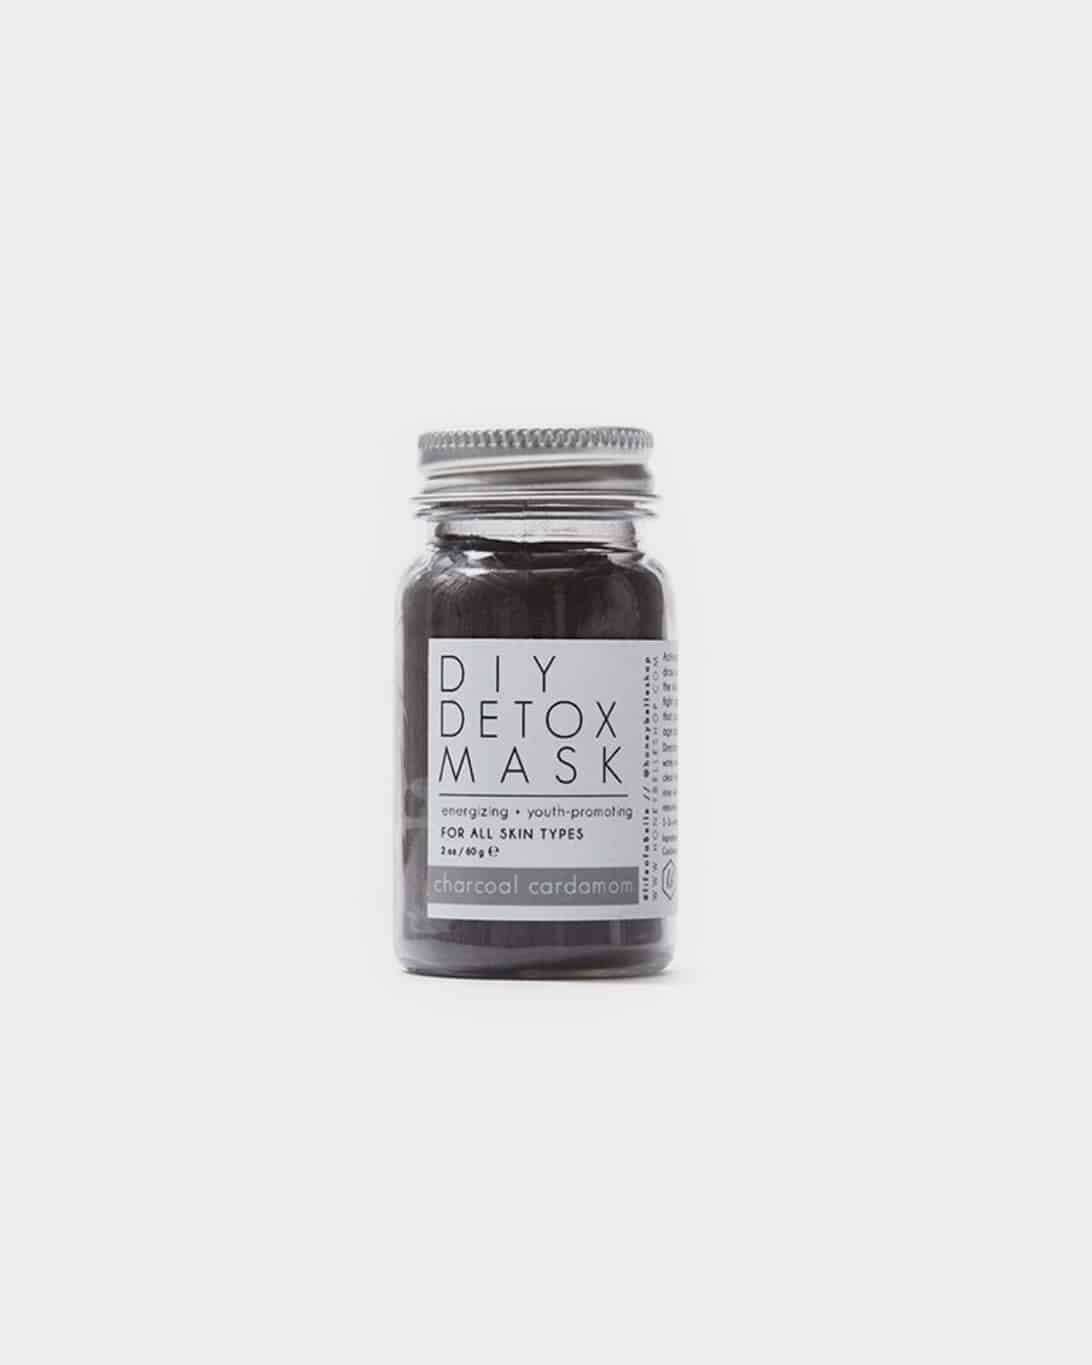 jar of honey belle charcoal cardamom mask